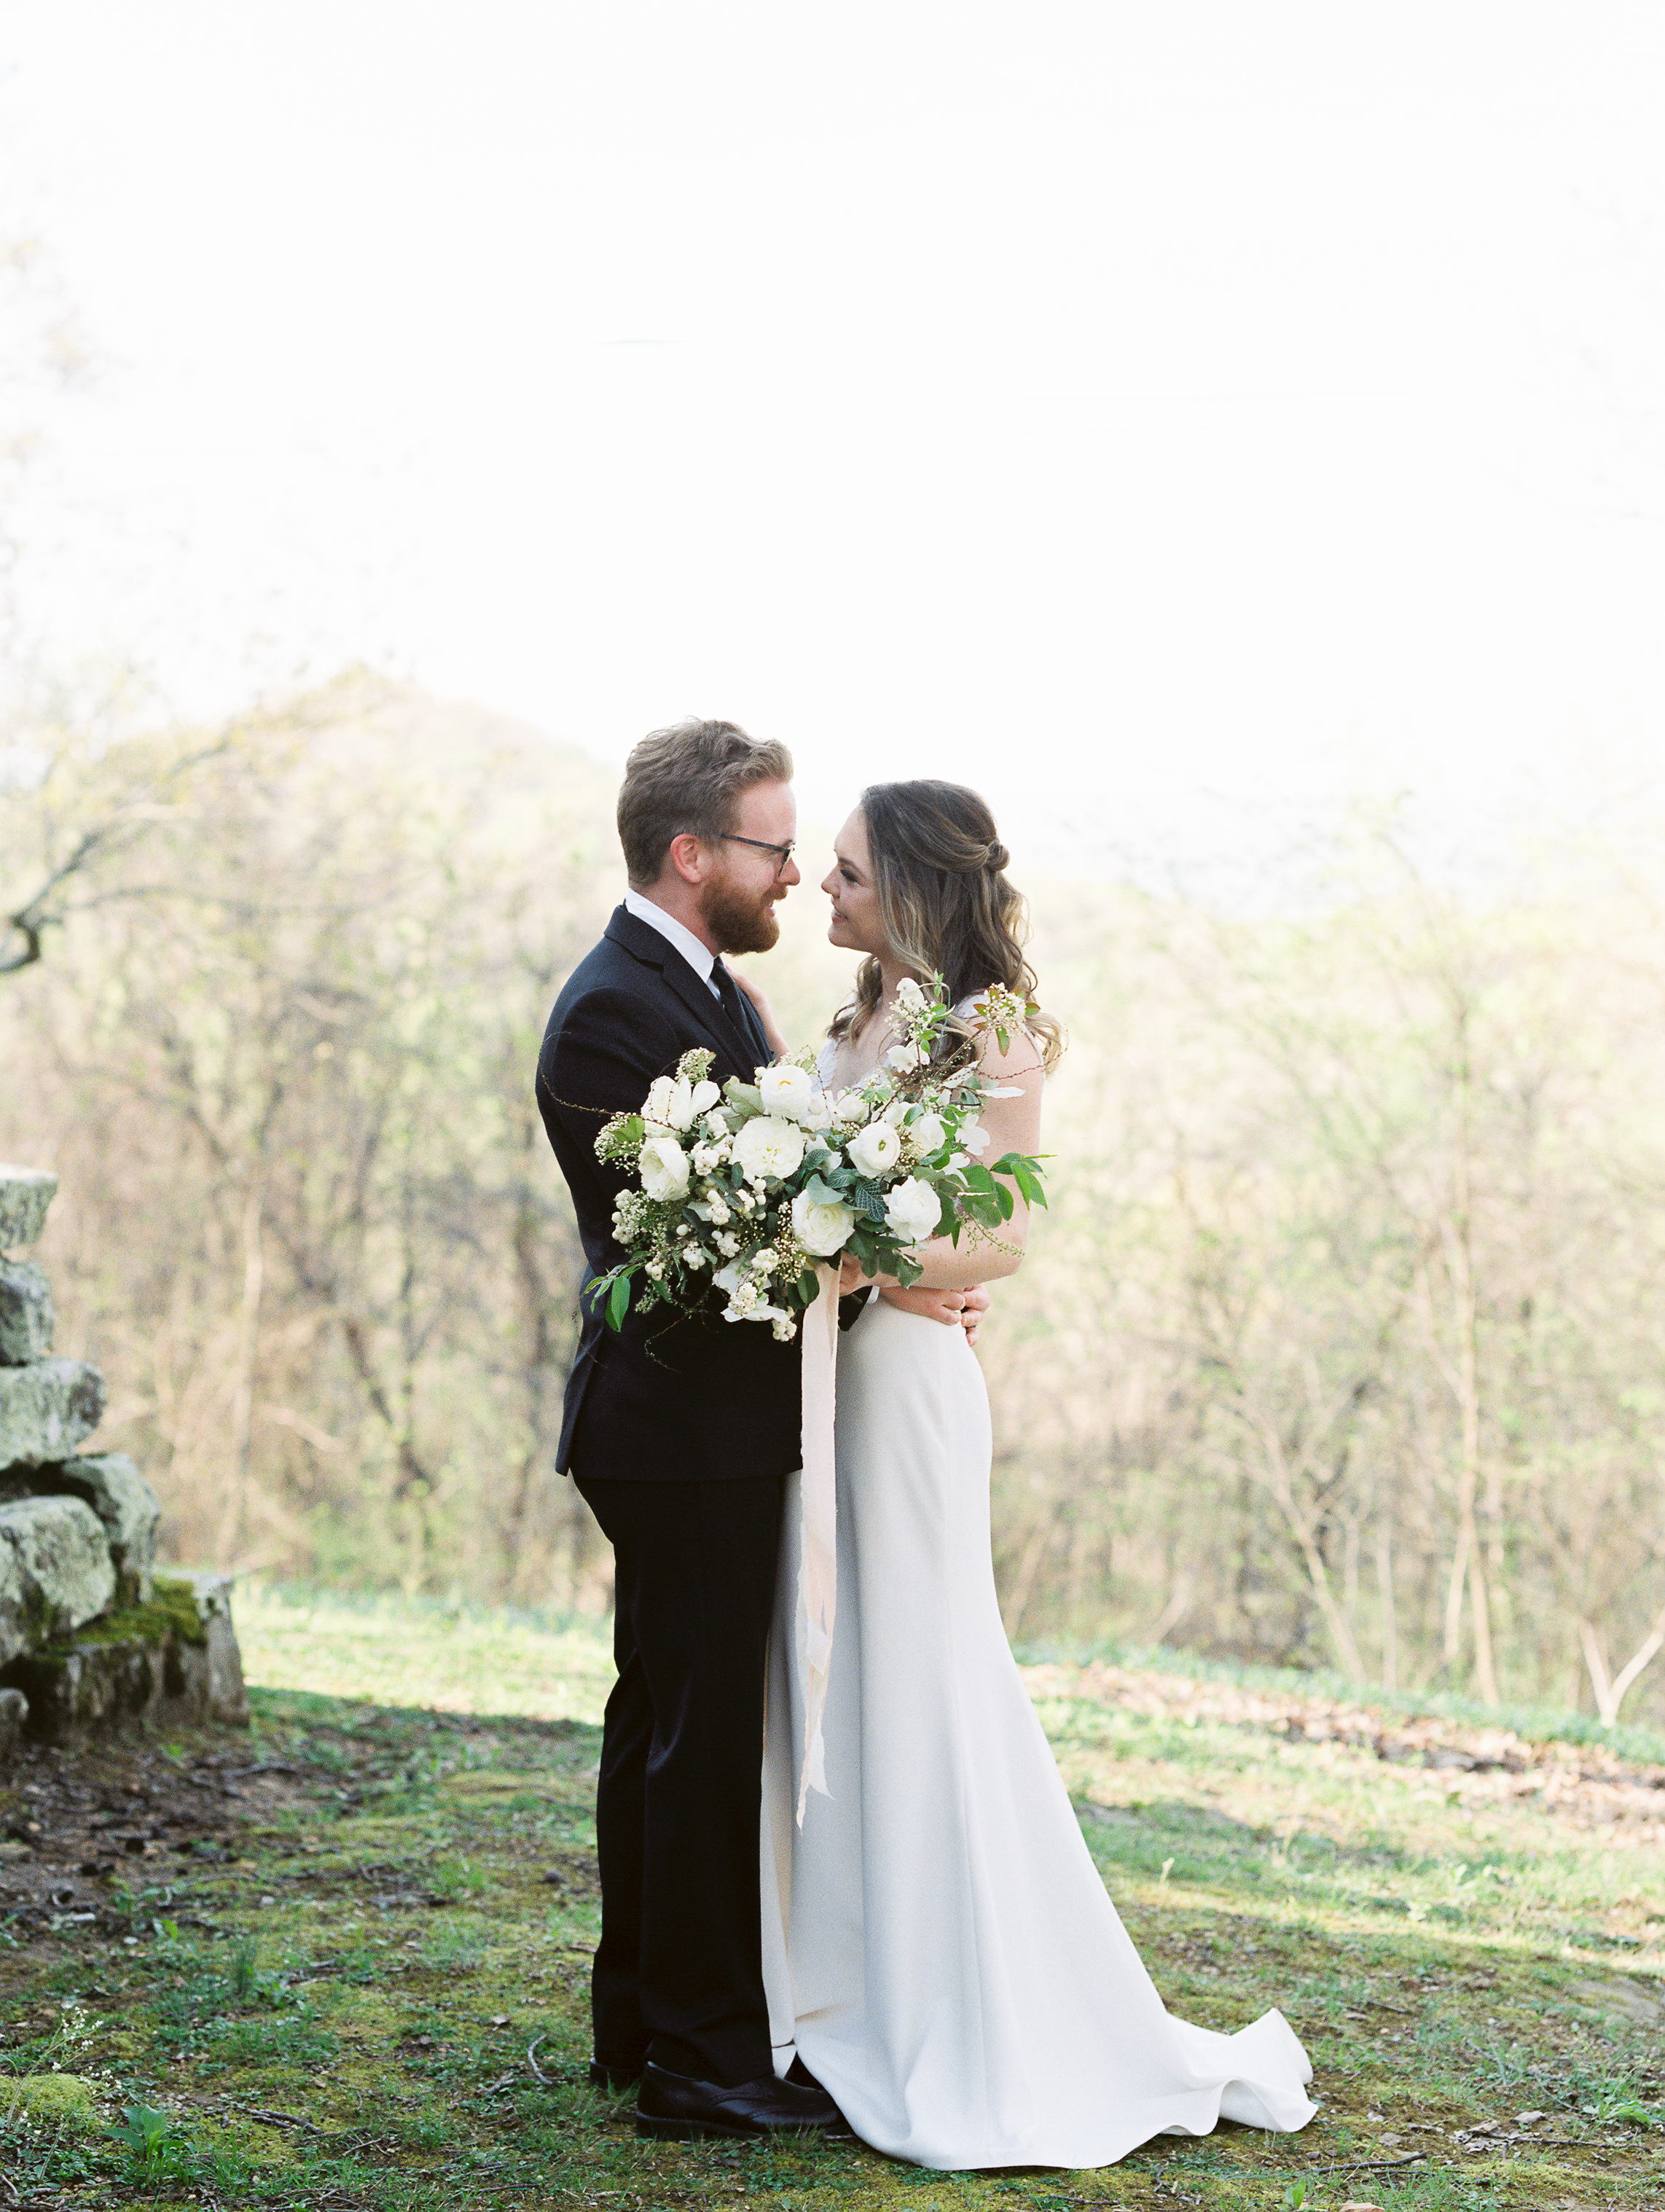 Rachel-Carter-Photography-Huntsville-Alabama-Fine-Art-Wedding-Photographer-1.jpg